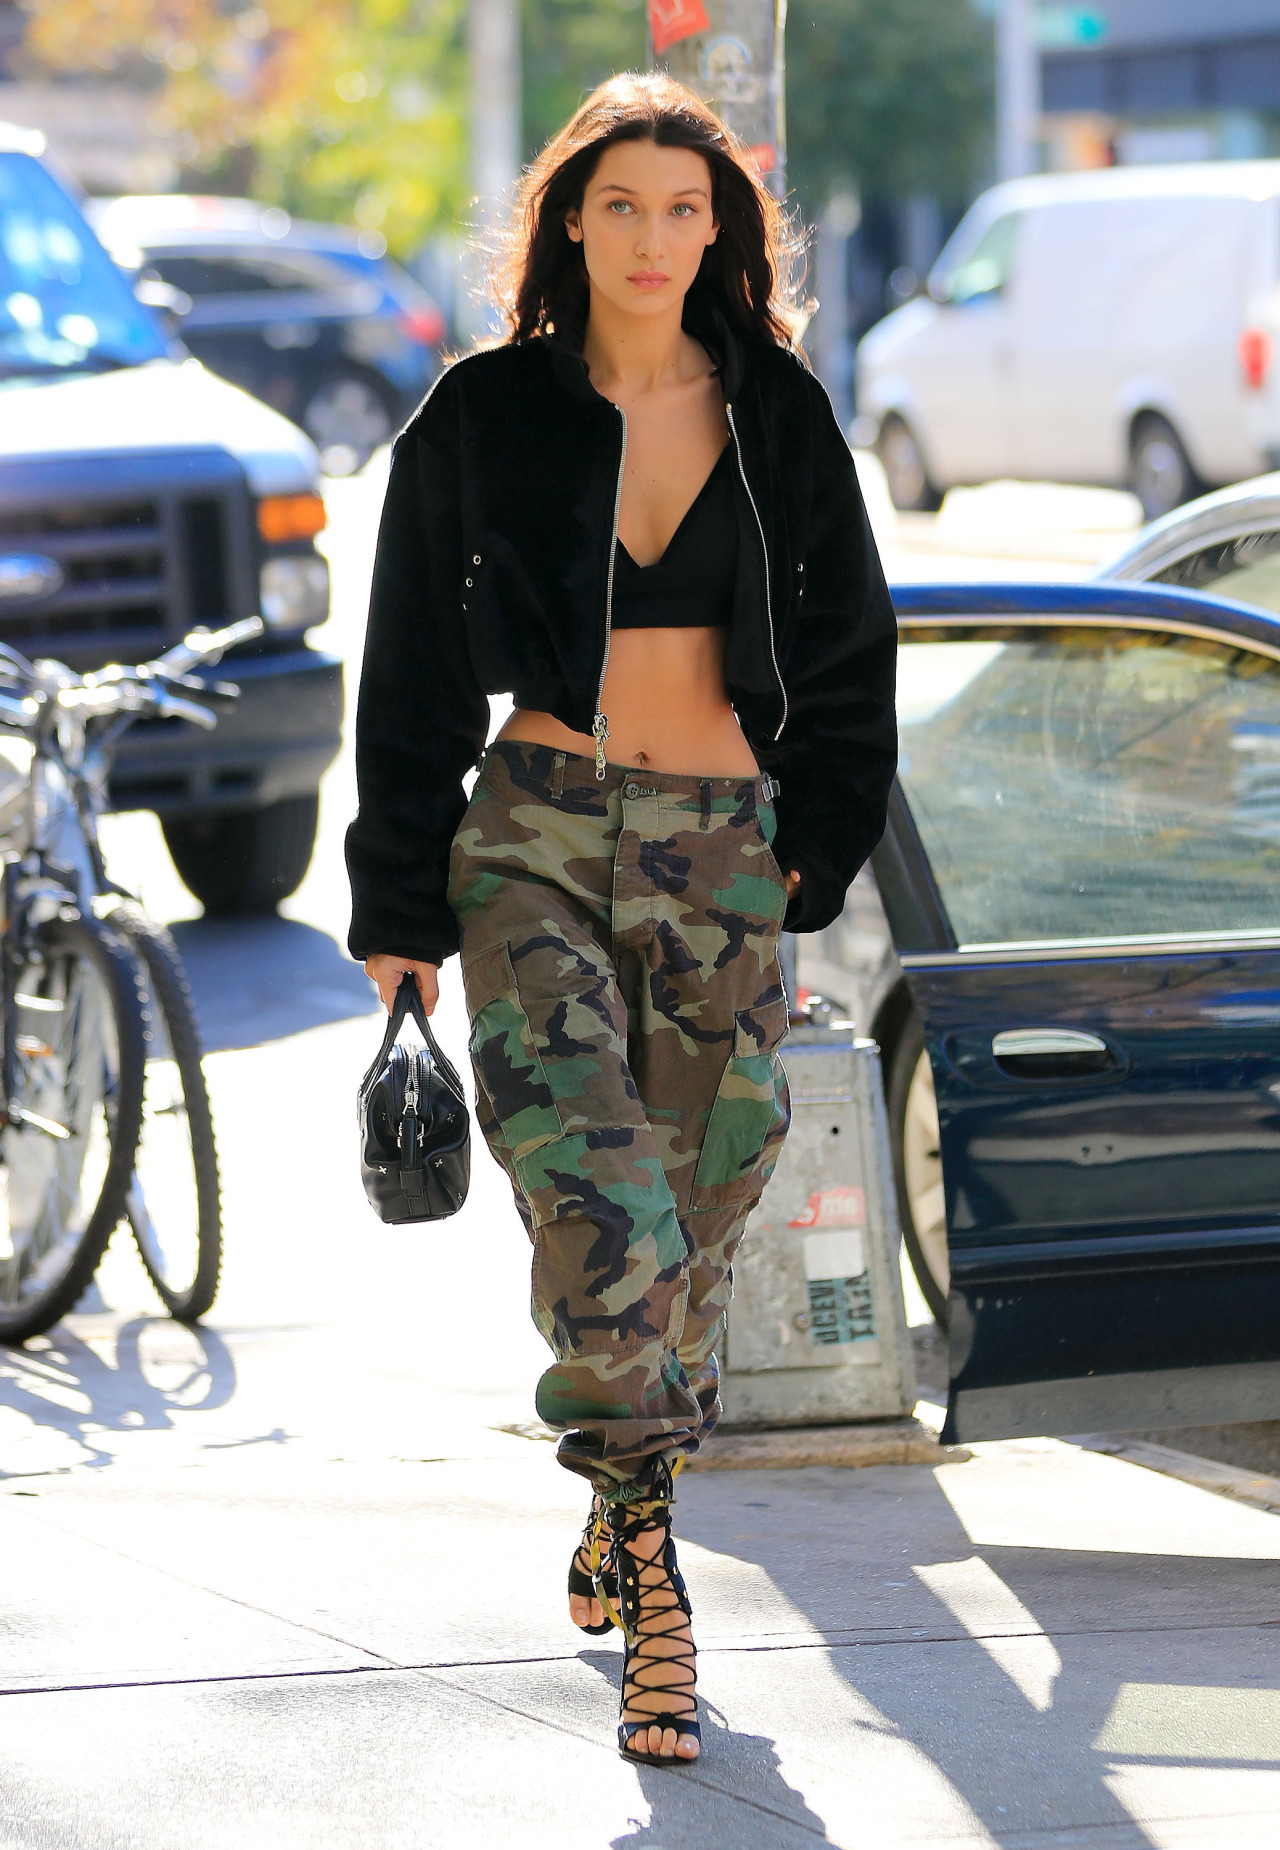 Bella Hadid bears her sexy midriff when out walking in New York Pictured: Bella Hadid Ref: SPL1380809 251016 Picture by: Jackson Lee / Splash News Splash News and Pictures Los Angeles: 310-821-2666 New York: 212-619-2666 London: 870-934-2666 photodesk@splashnews.com